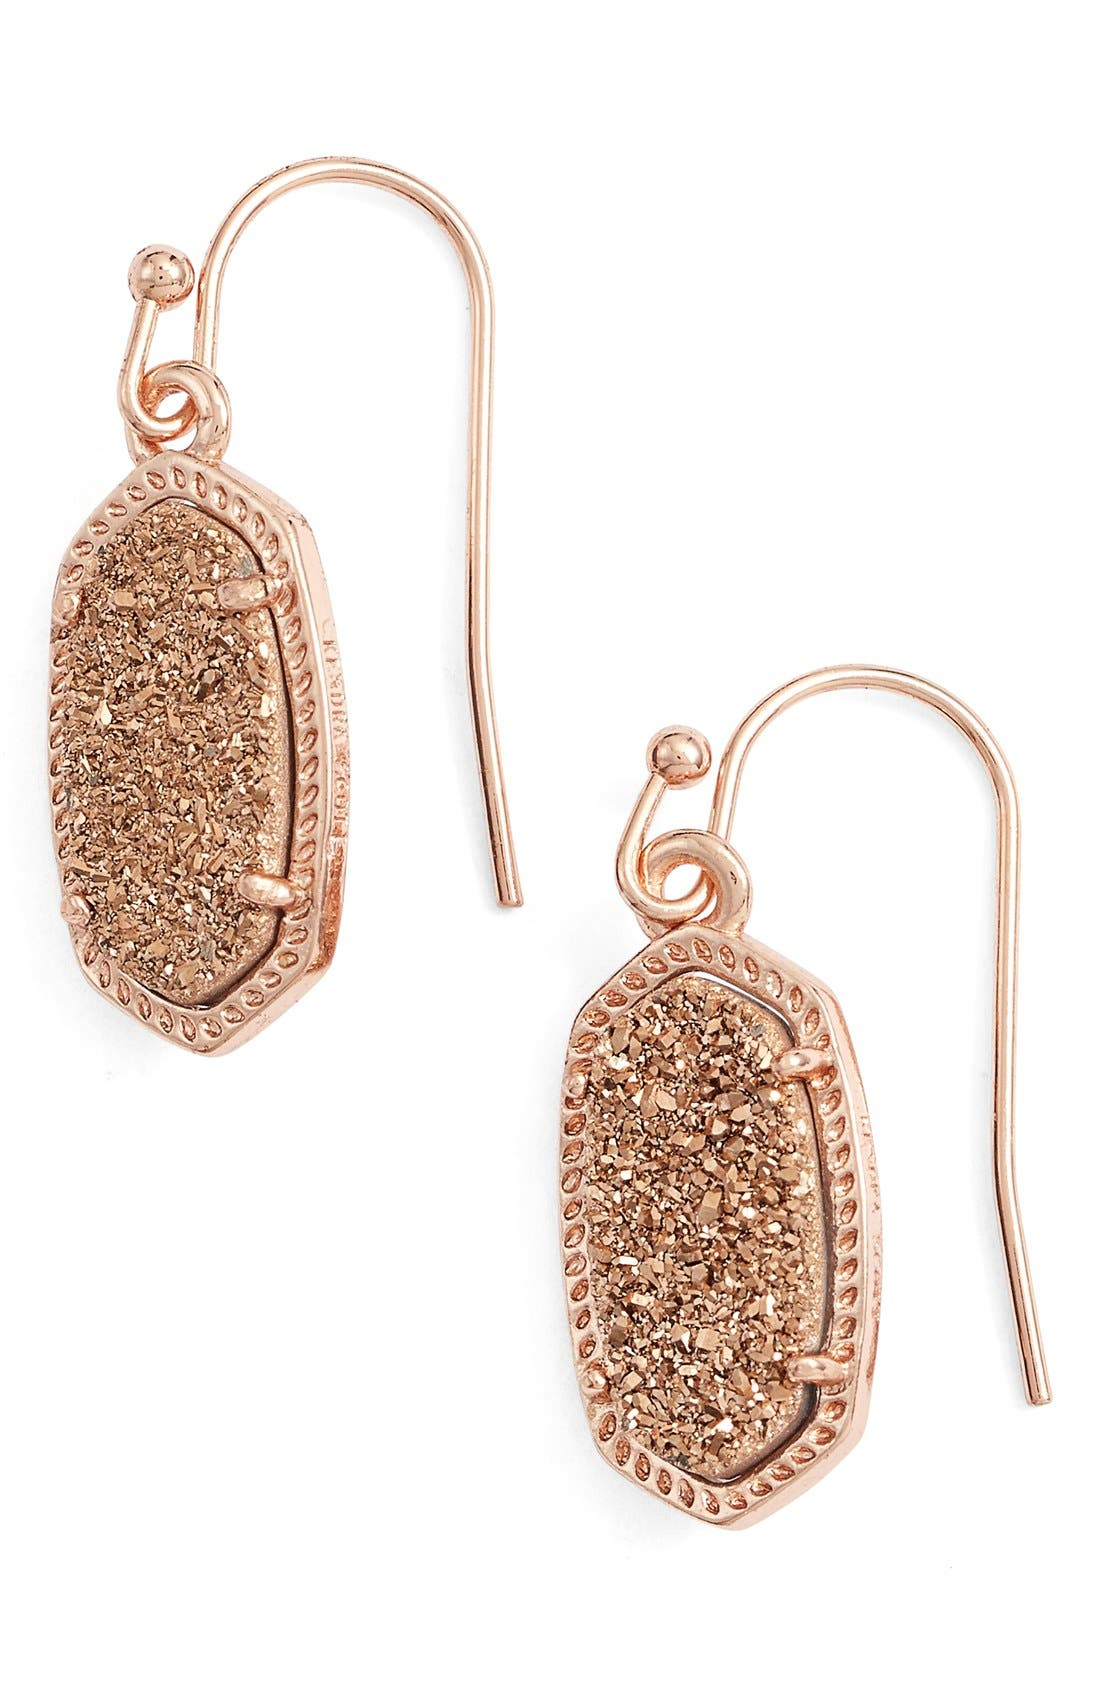 Lee Small Drop Earrings,                         Main,                         color, Rose Drusy/ Rose Gold